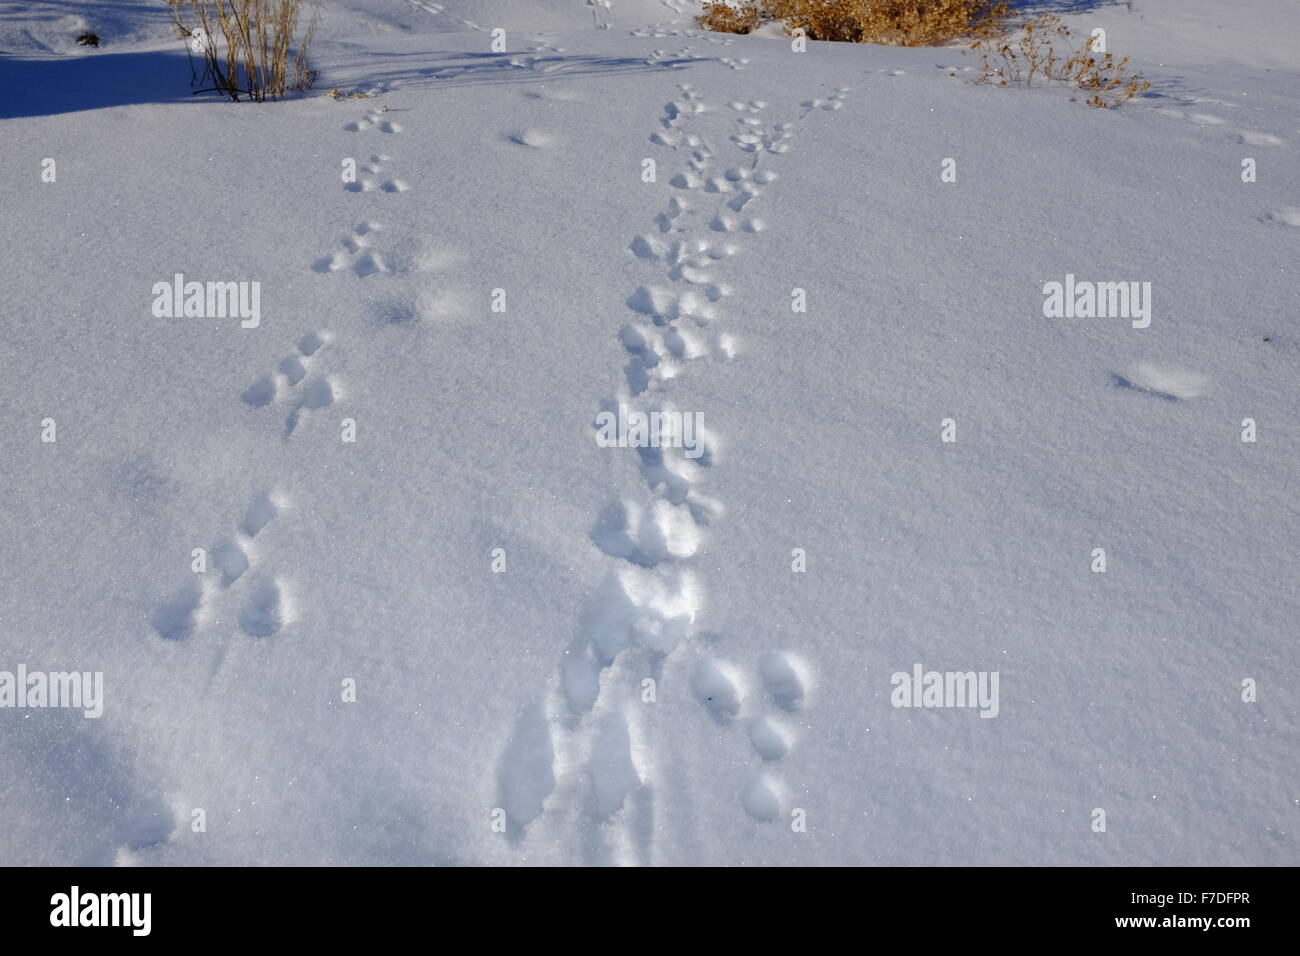 Winter snow scenes with animal tracks and frost in the trees - Stock Image